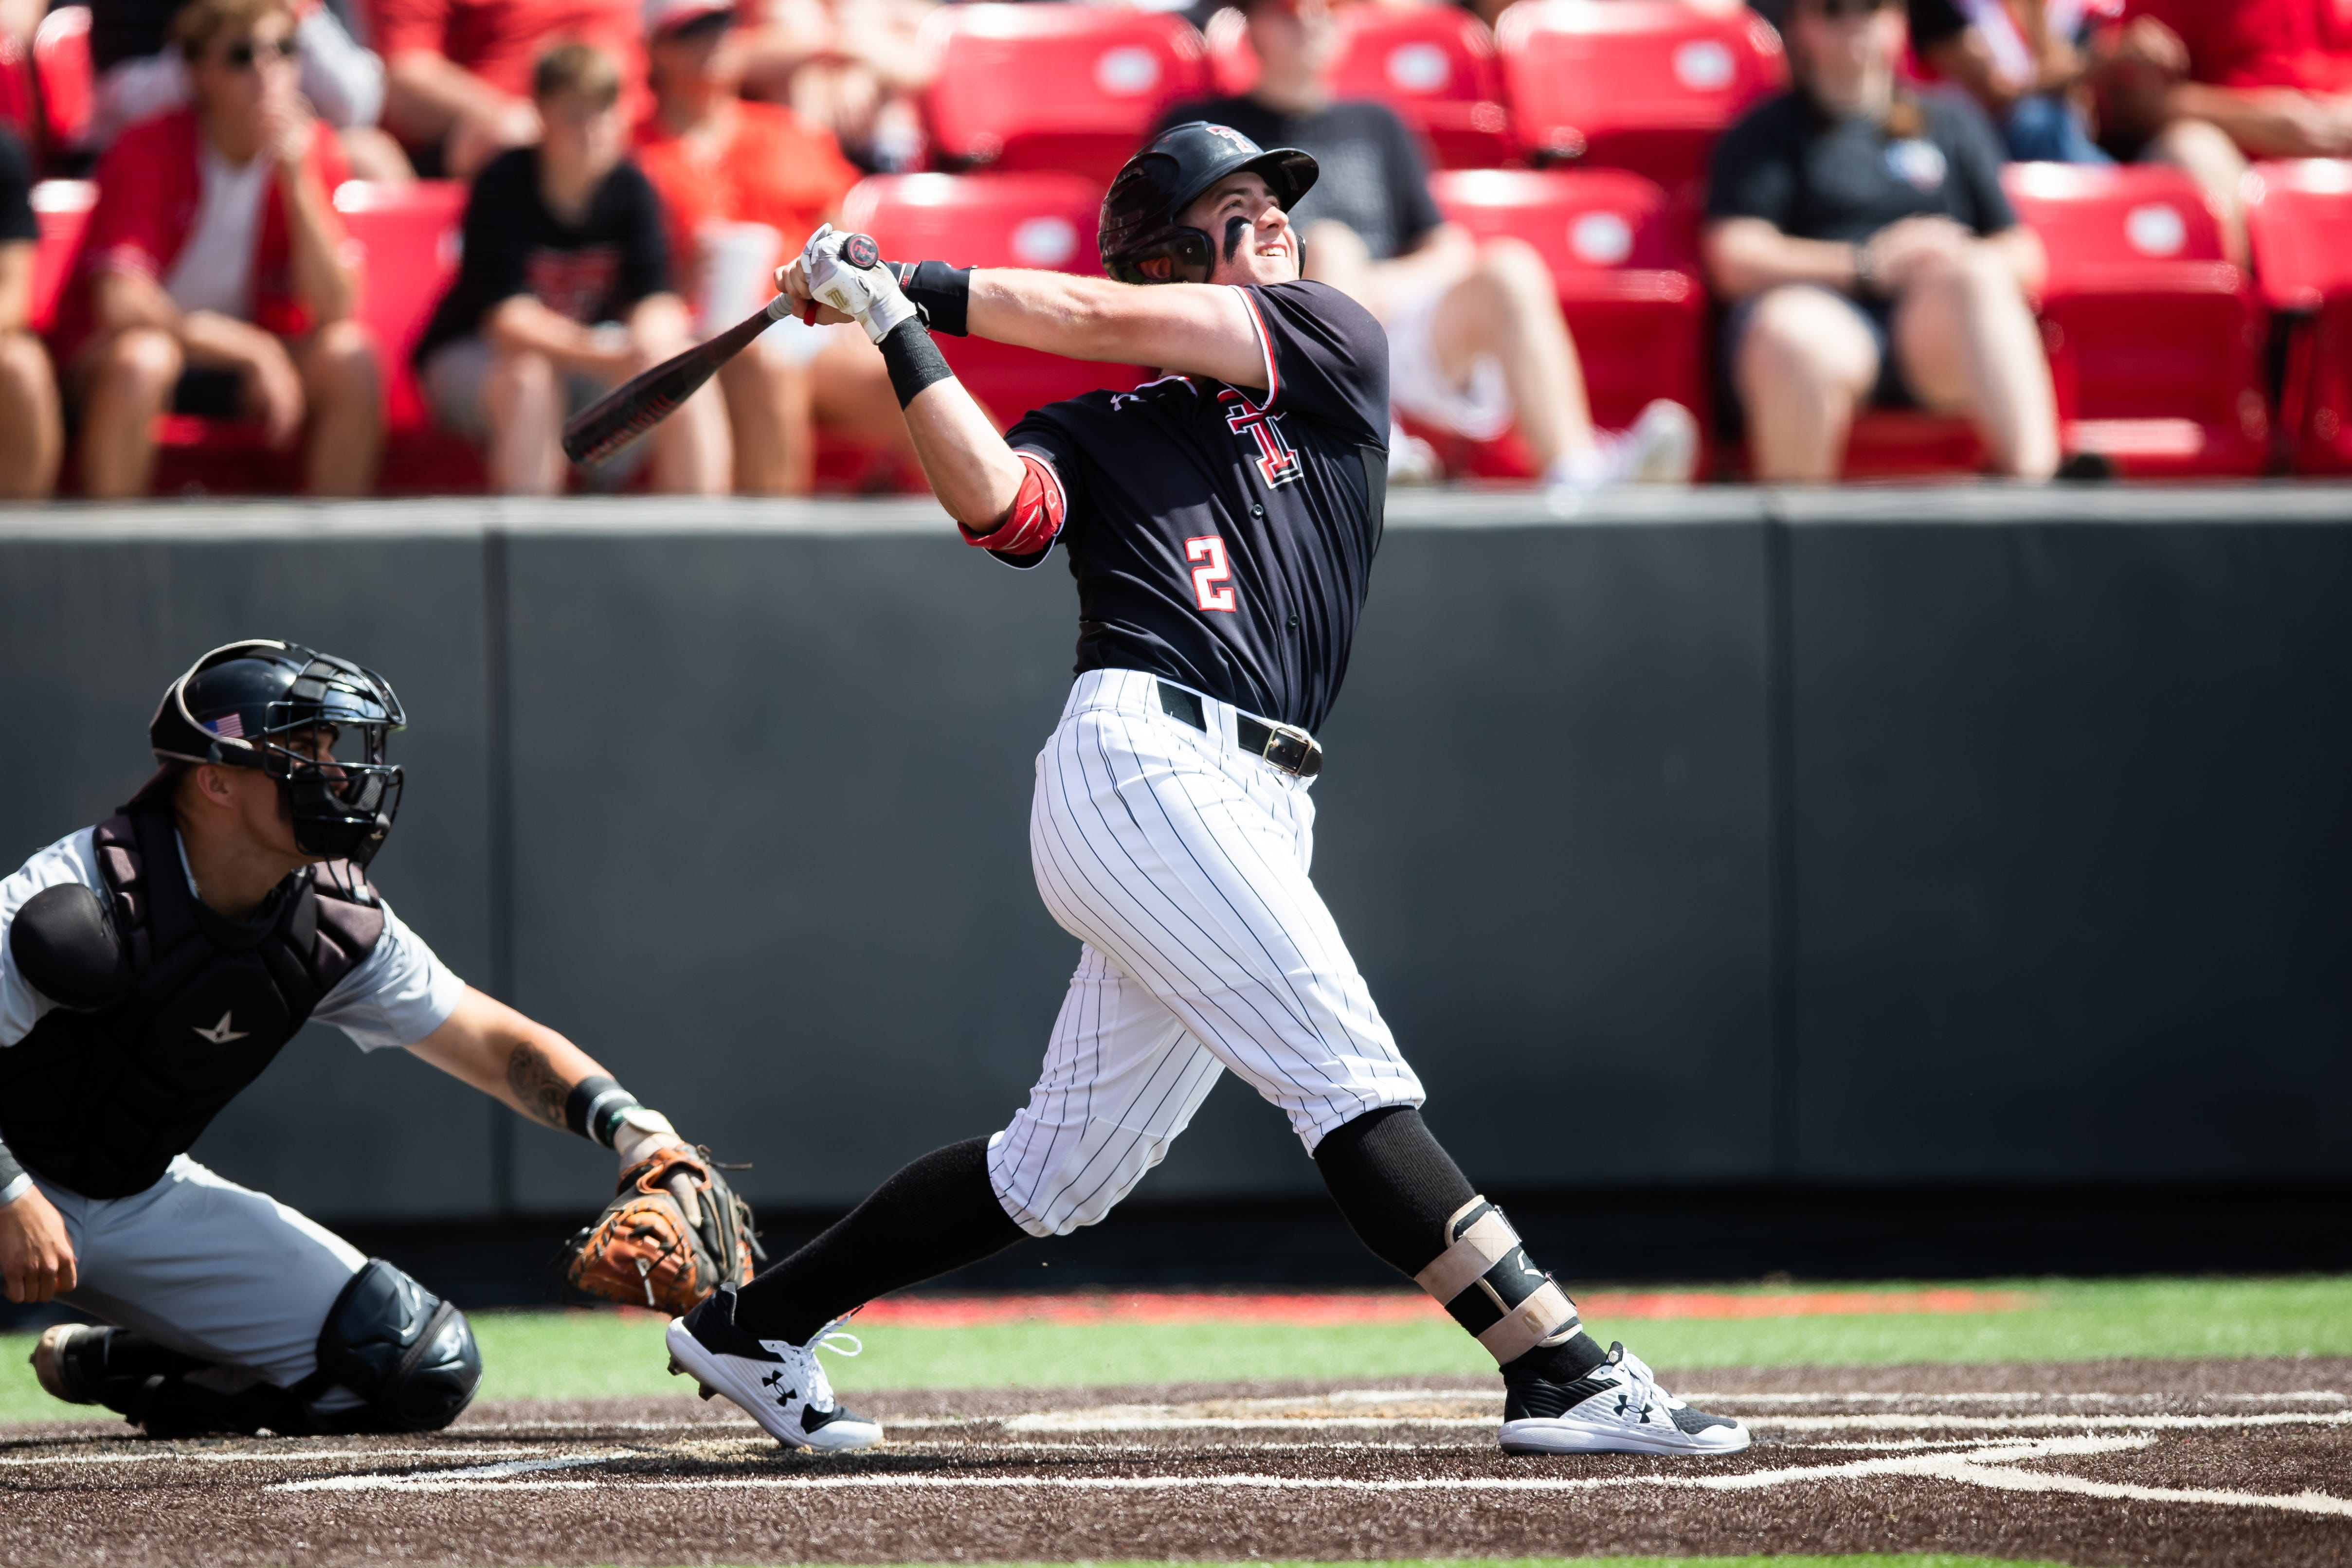 Texas Tech's Jace Jung swings the bat during the opening game Friday, June 4, 2021, against Army of the NCAA Lubbock Regional at Dan Law Field at Rip Griffin Park.